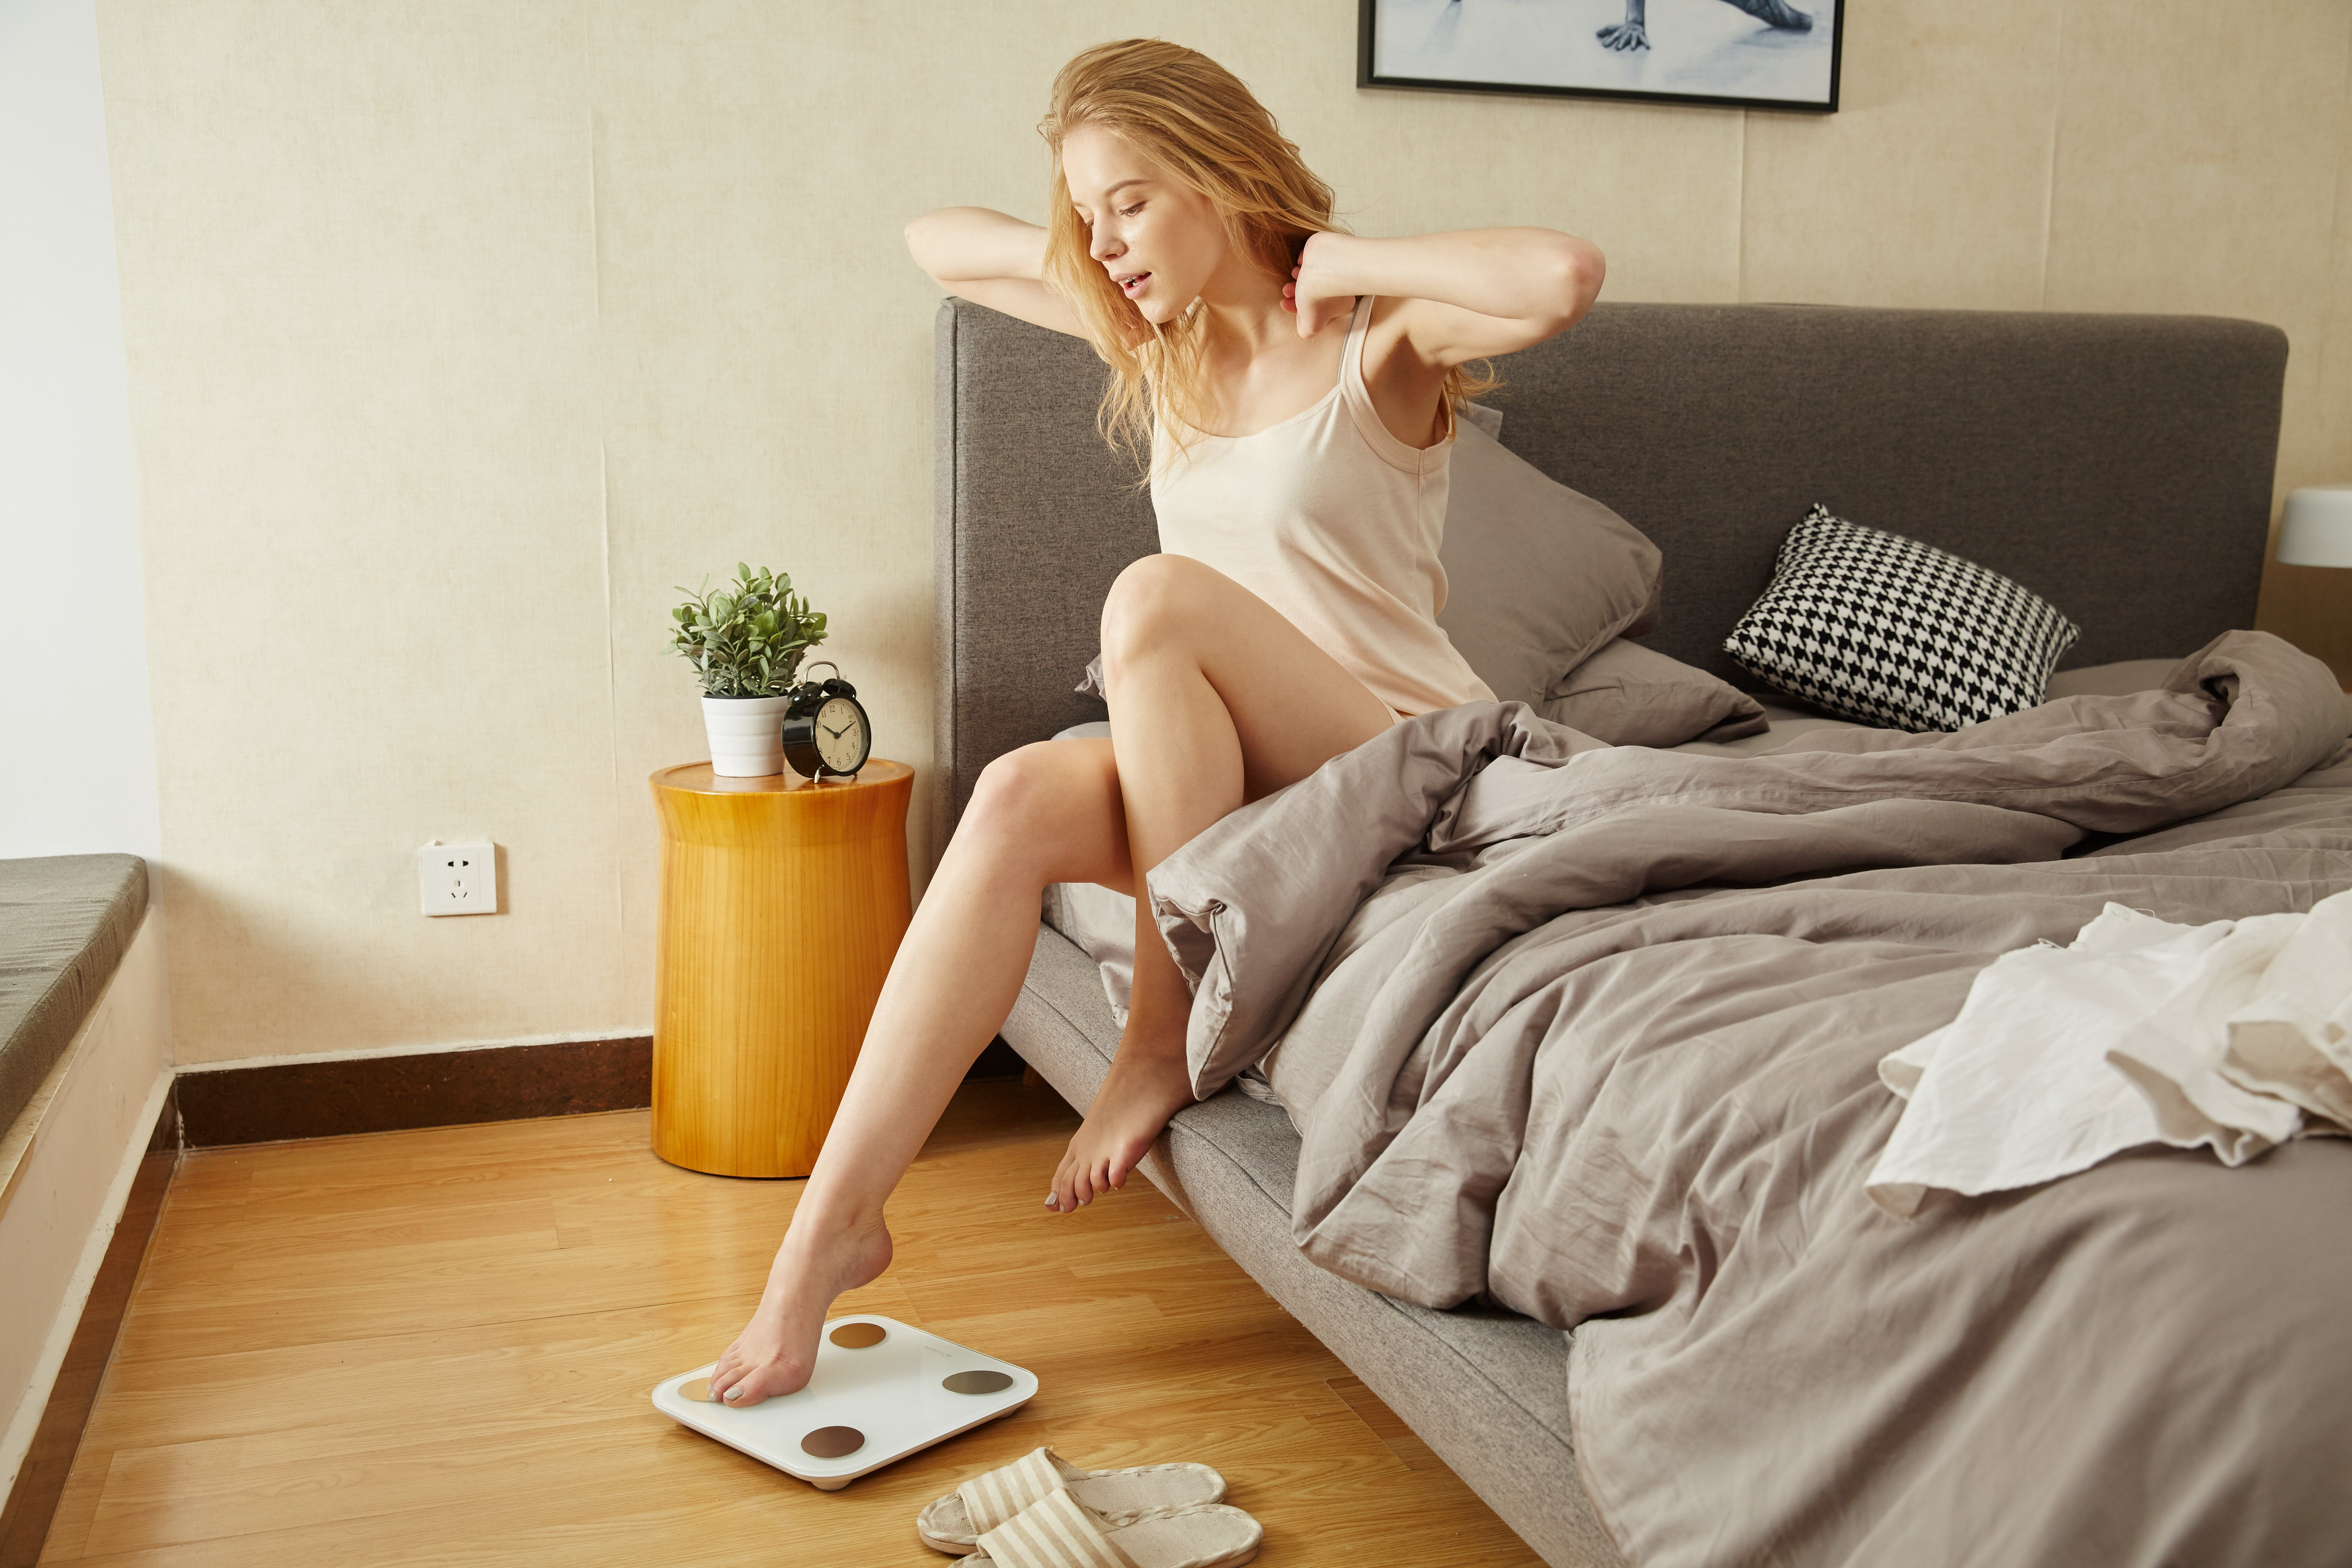 An image for Boise weight loss, a woman gingerly measures her weight by placing a toe on the scale.